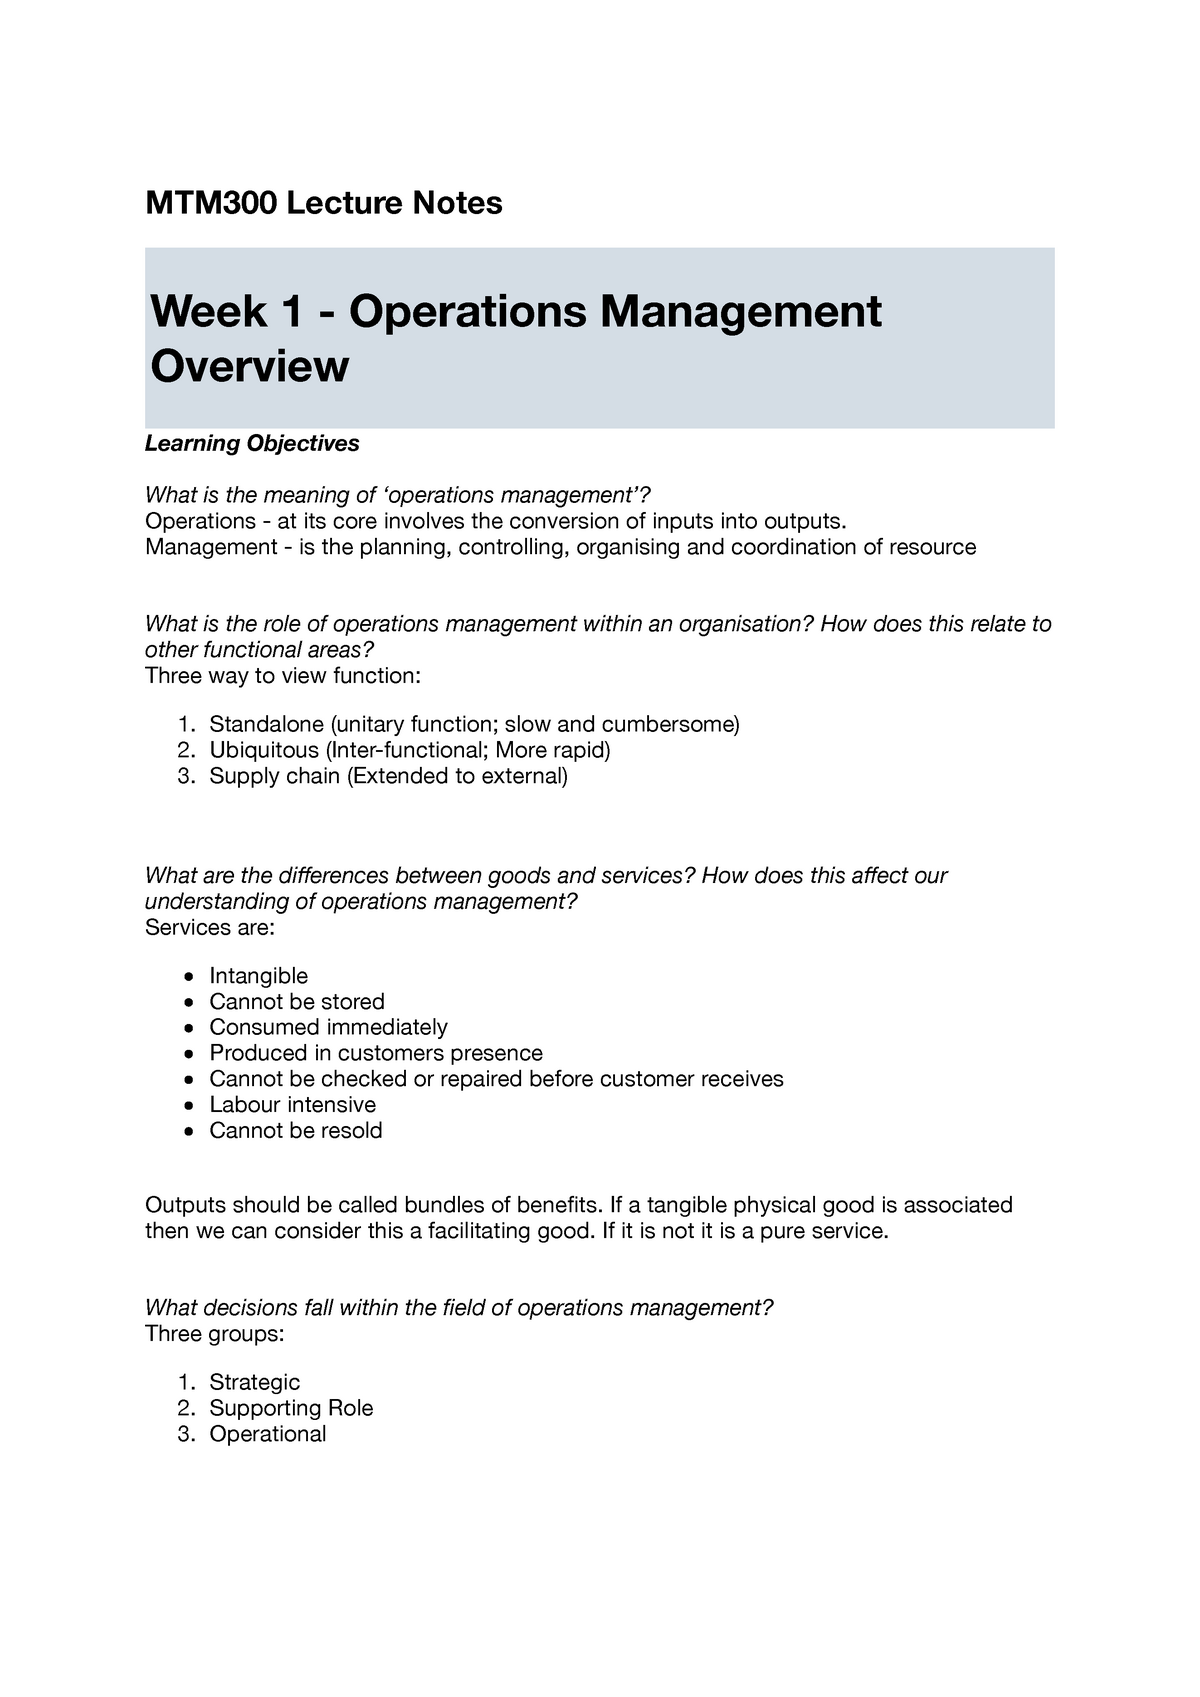 Lecture notes, lectures 1-13 - MTM 300: Managing Operations - StuDocu